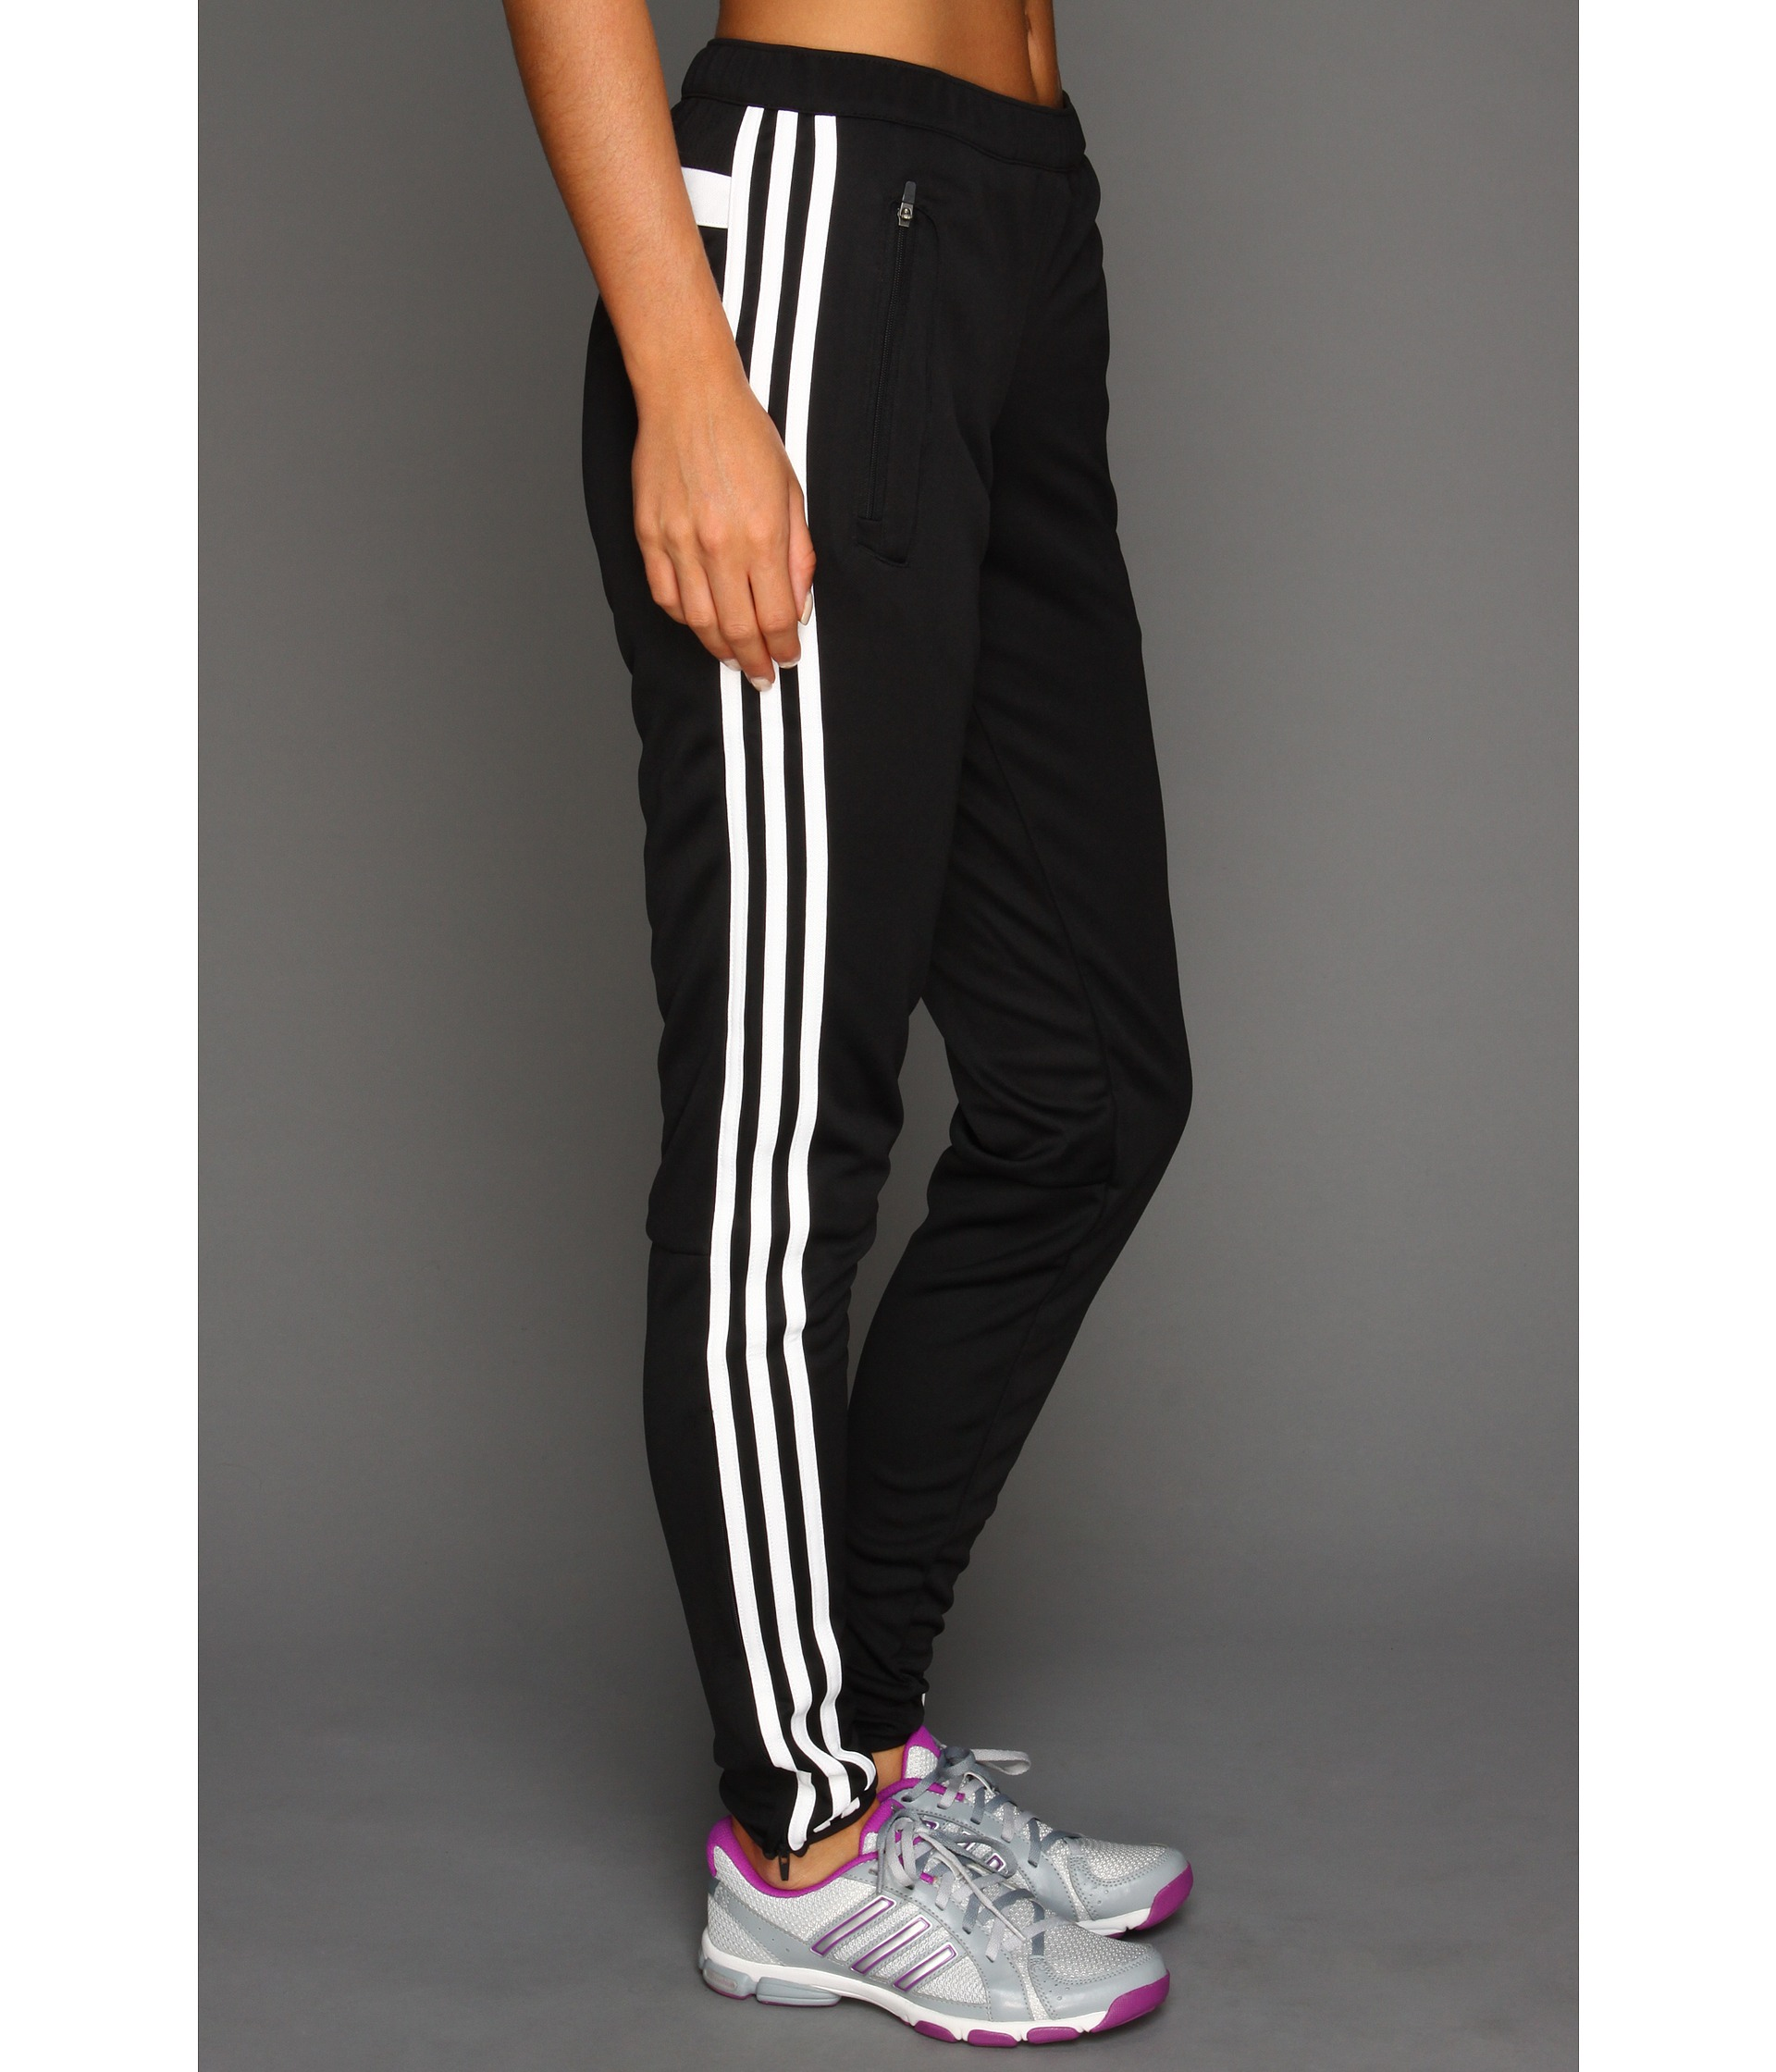 Amazing Women39s Adidas Soccer Pants Tiro 15 Slim Fit Climacool Black Skinny